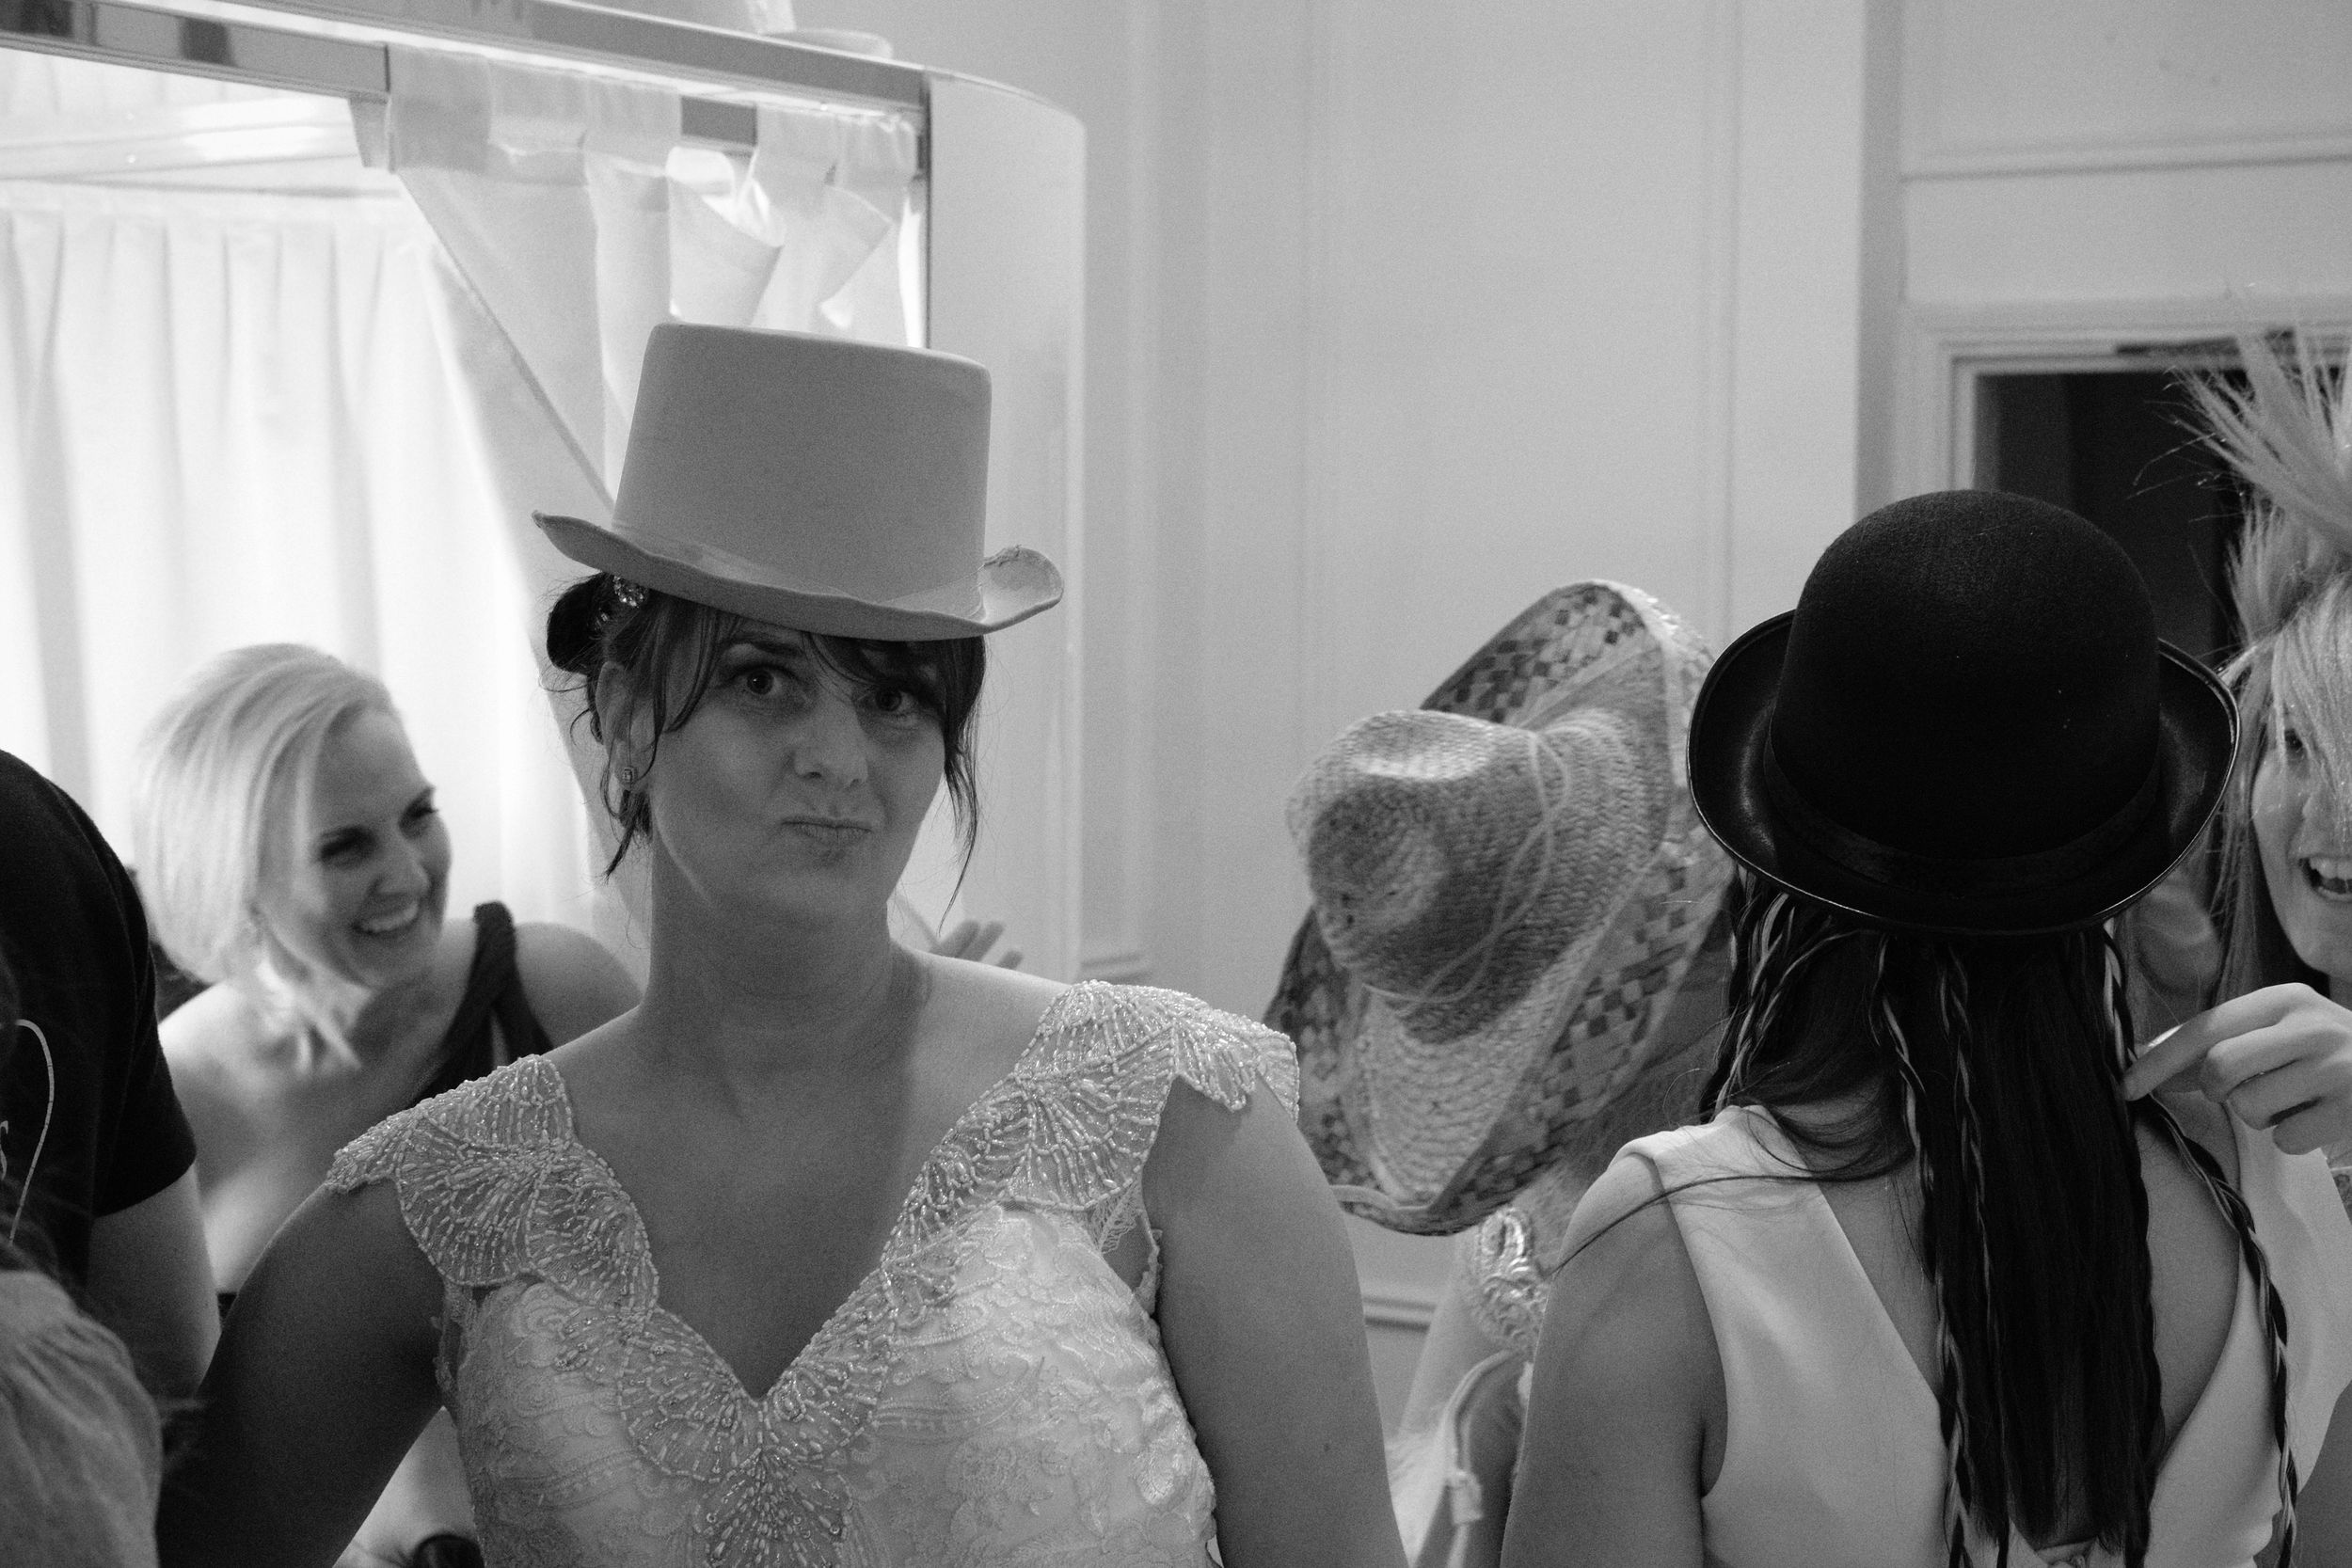 Newcastle Wedding Photographer // Bride tries on guest's hat at reception